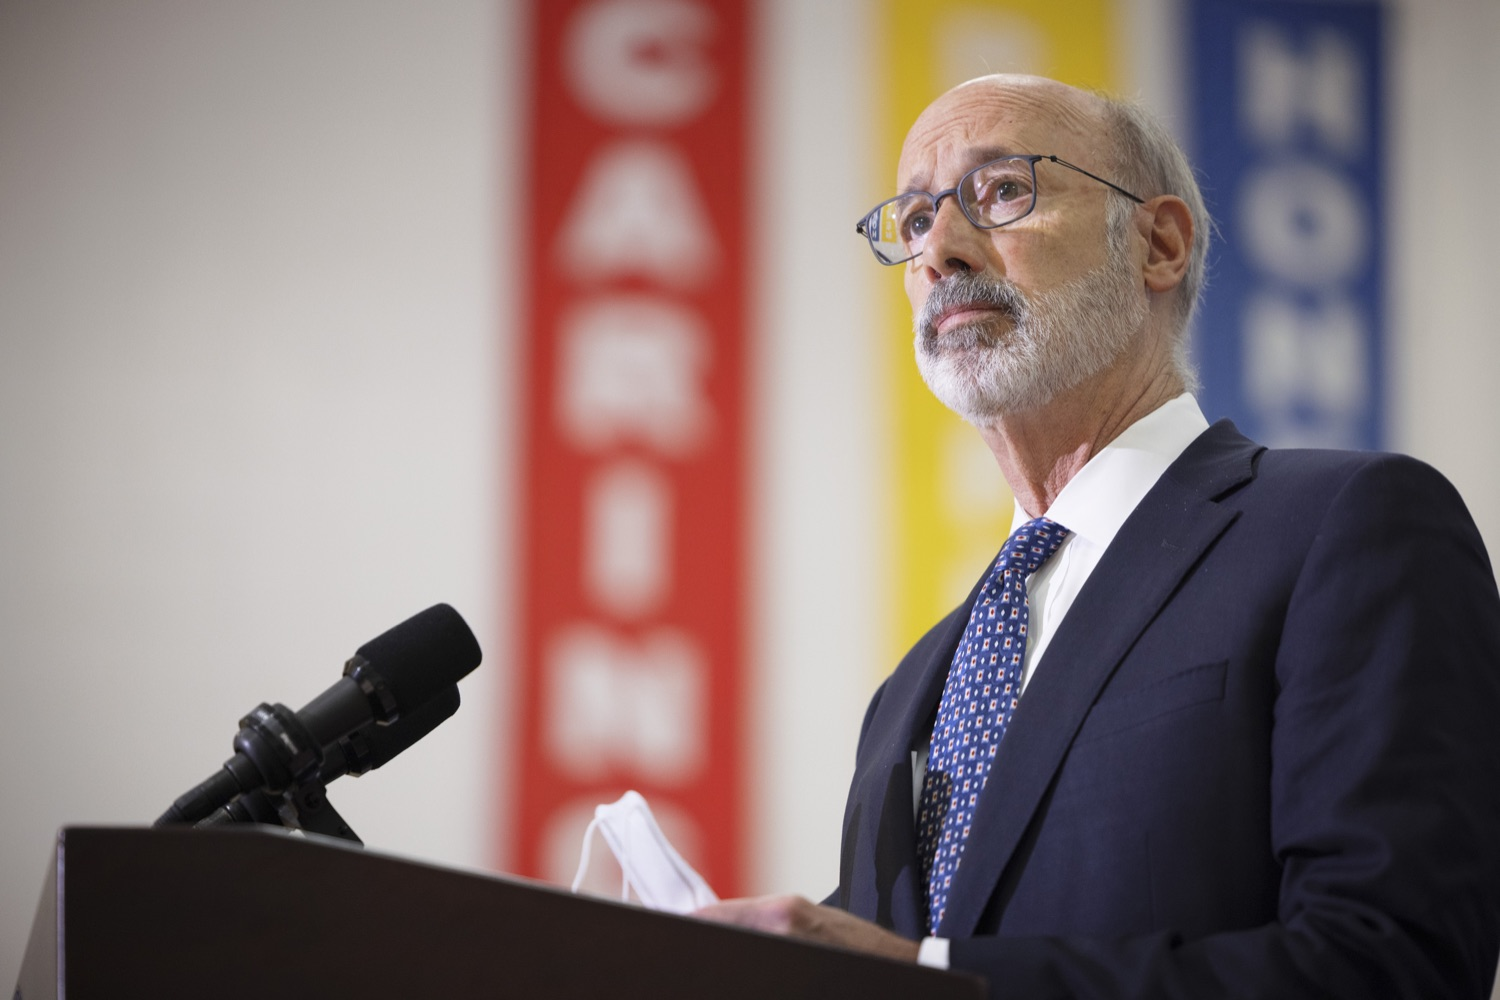 """<a href=""""https://filesource.wostreaming.net/commonwealthofpa/photo/20078_gov_gunviolence_dz_021.jpg"""" target=""""_blank"""">⇣Download Photo<br></a>Pennsylvania Governor Tom Wolf speaking with the press.  Governor Tom Wolf today joined state lawmakers to remind communities and organizations that $24 million in state funding is available to address community violence.  Philadelphia, PA - September 23, 2021"""